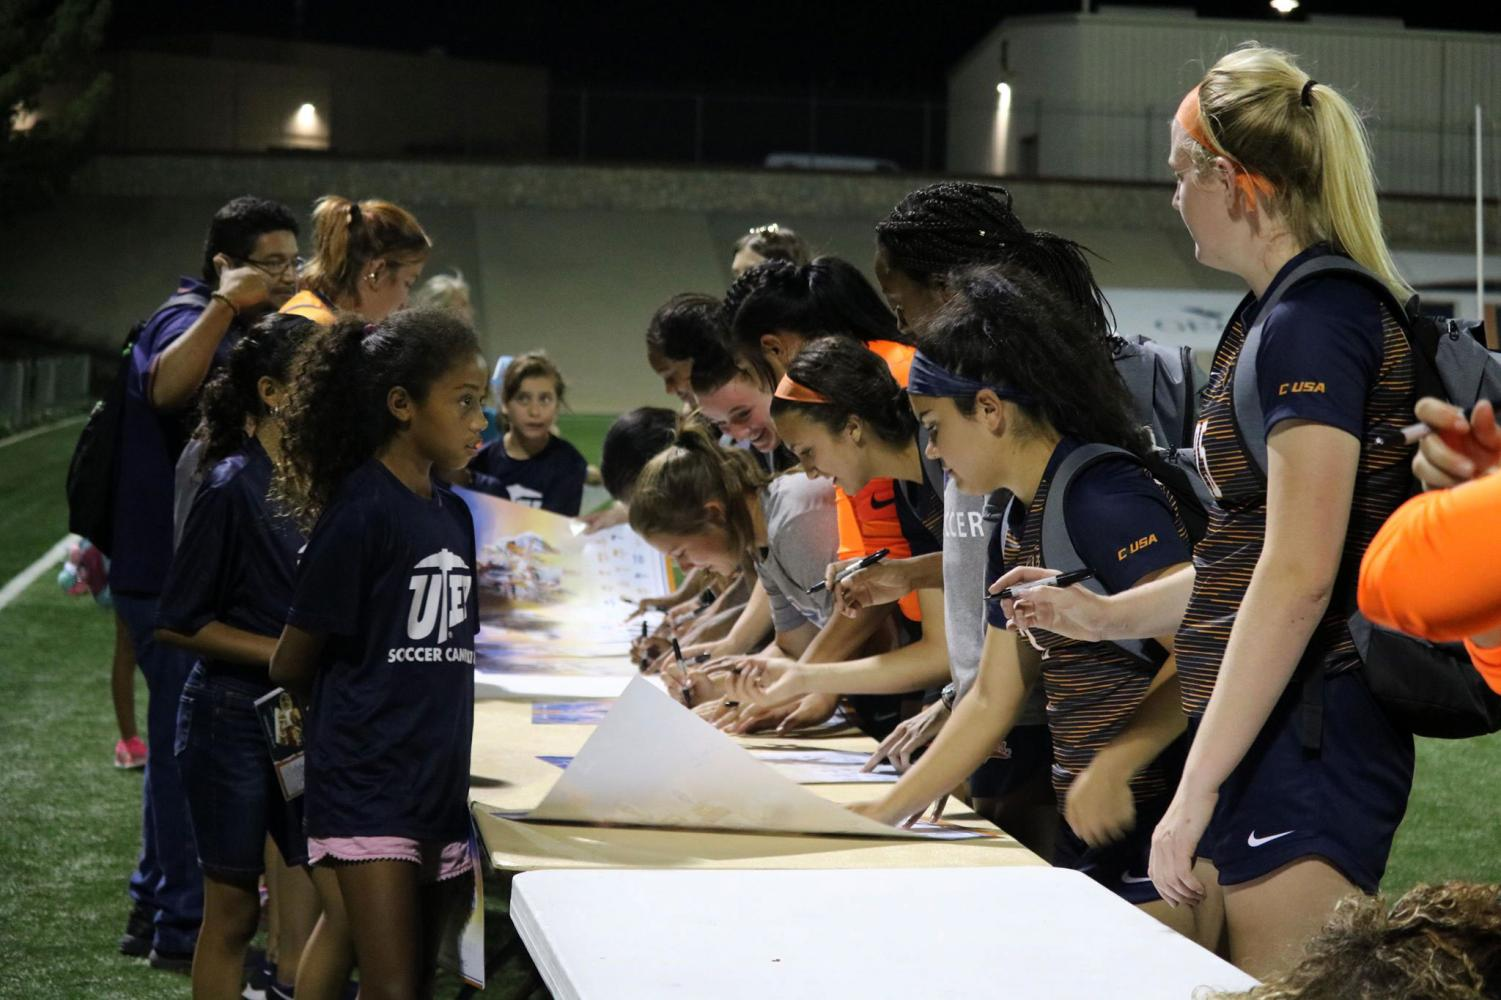 UTEP+Miners+%E2%80%8Bsign+autographs+to+the+soccer+girls+camp+at+the+University+field+on+August+17%2C+2018.